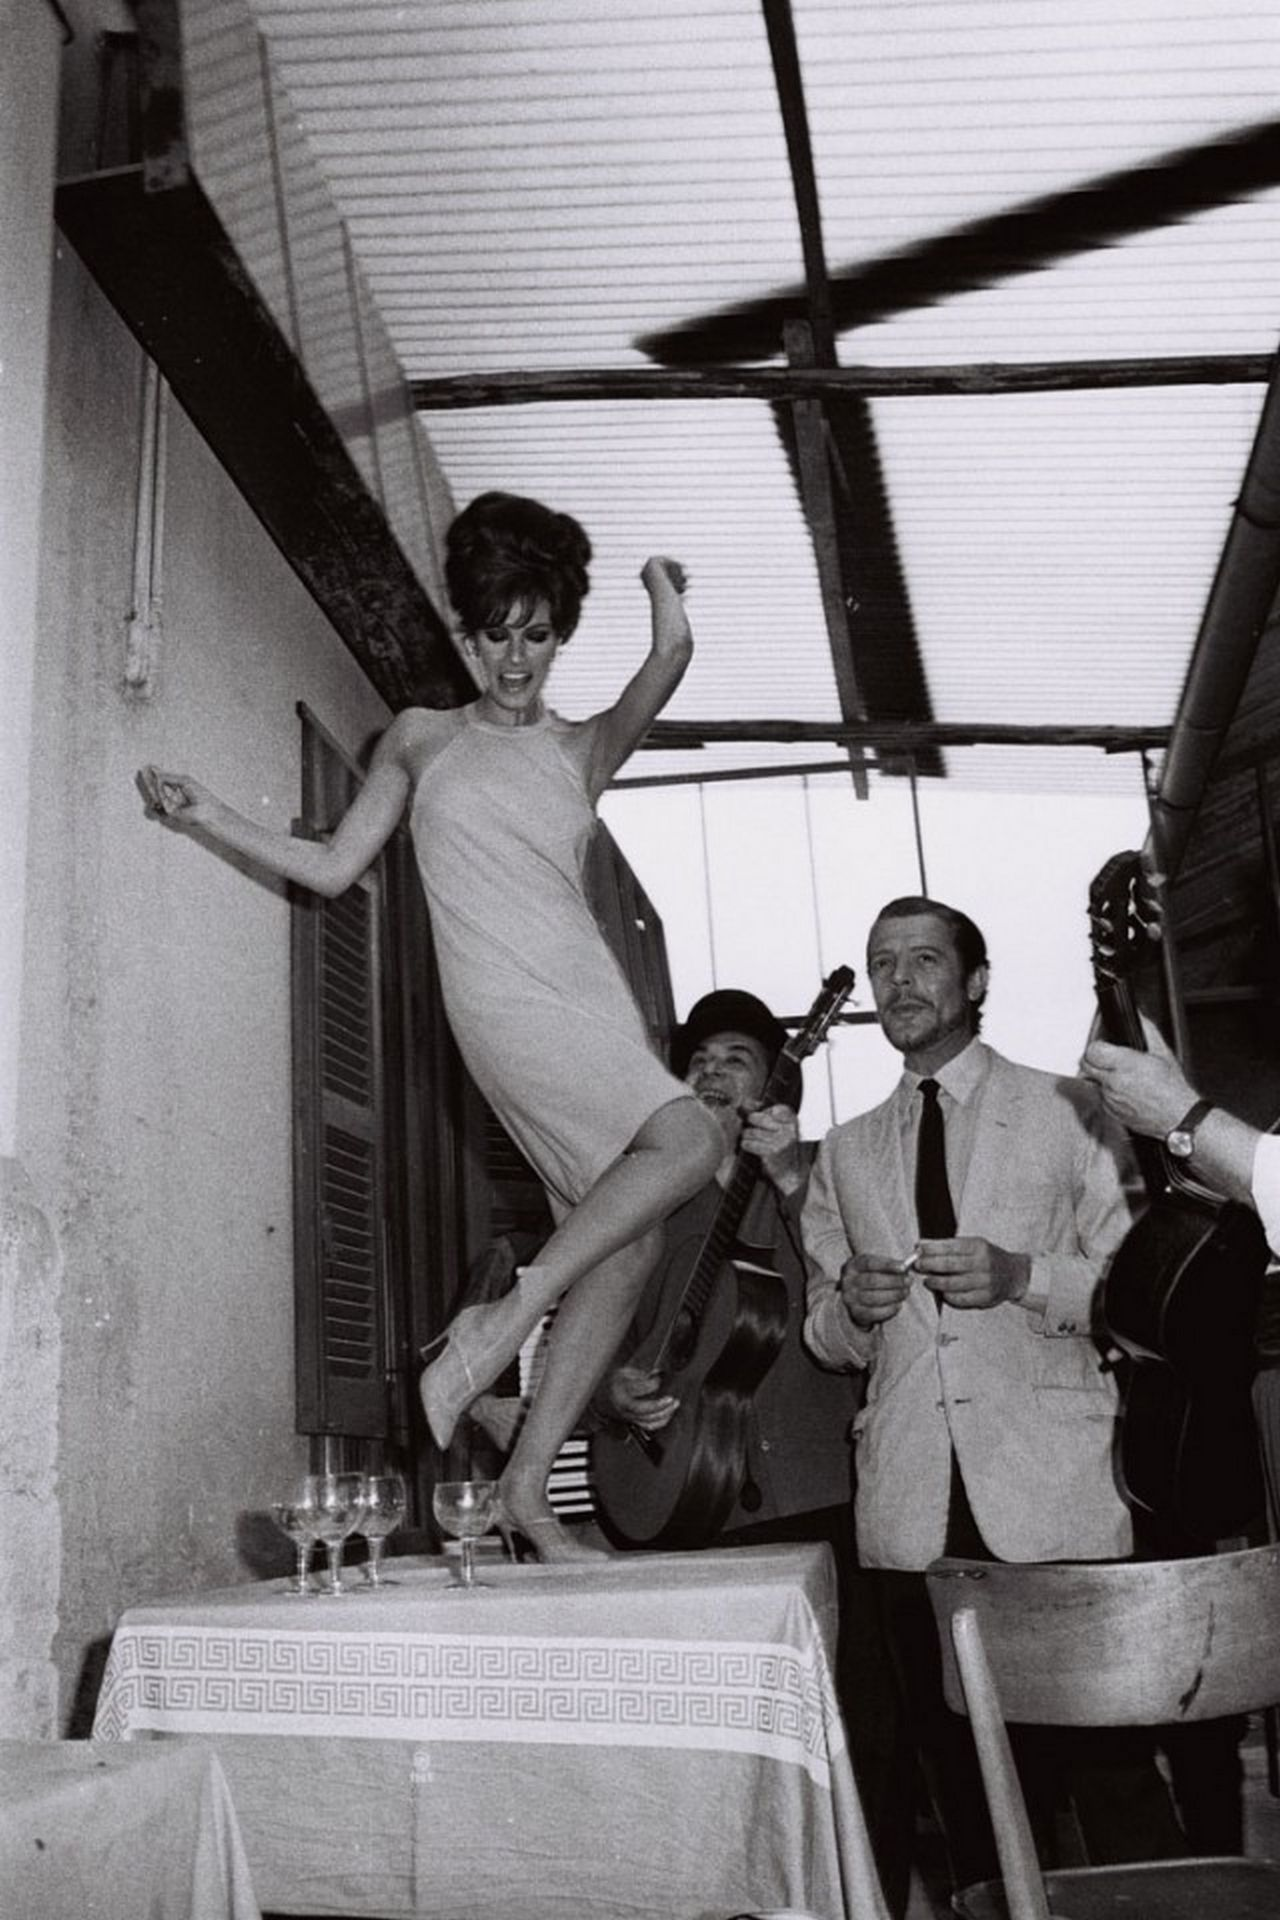 Raquel Welch and Marcello Mastroianni at Rome's Cinecittà studios on the set of the film Shoot Loud, Louder I Do Not Understand in 1966.